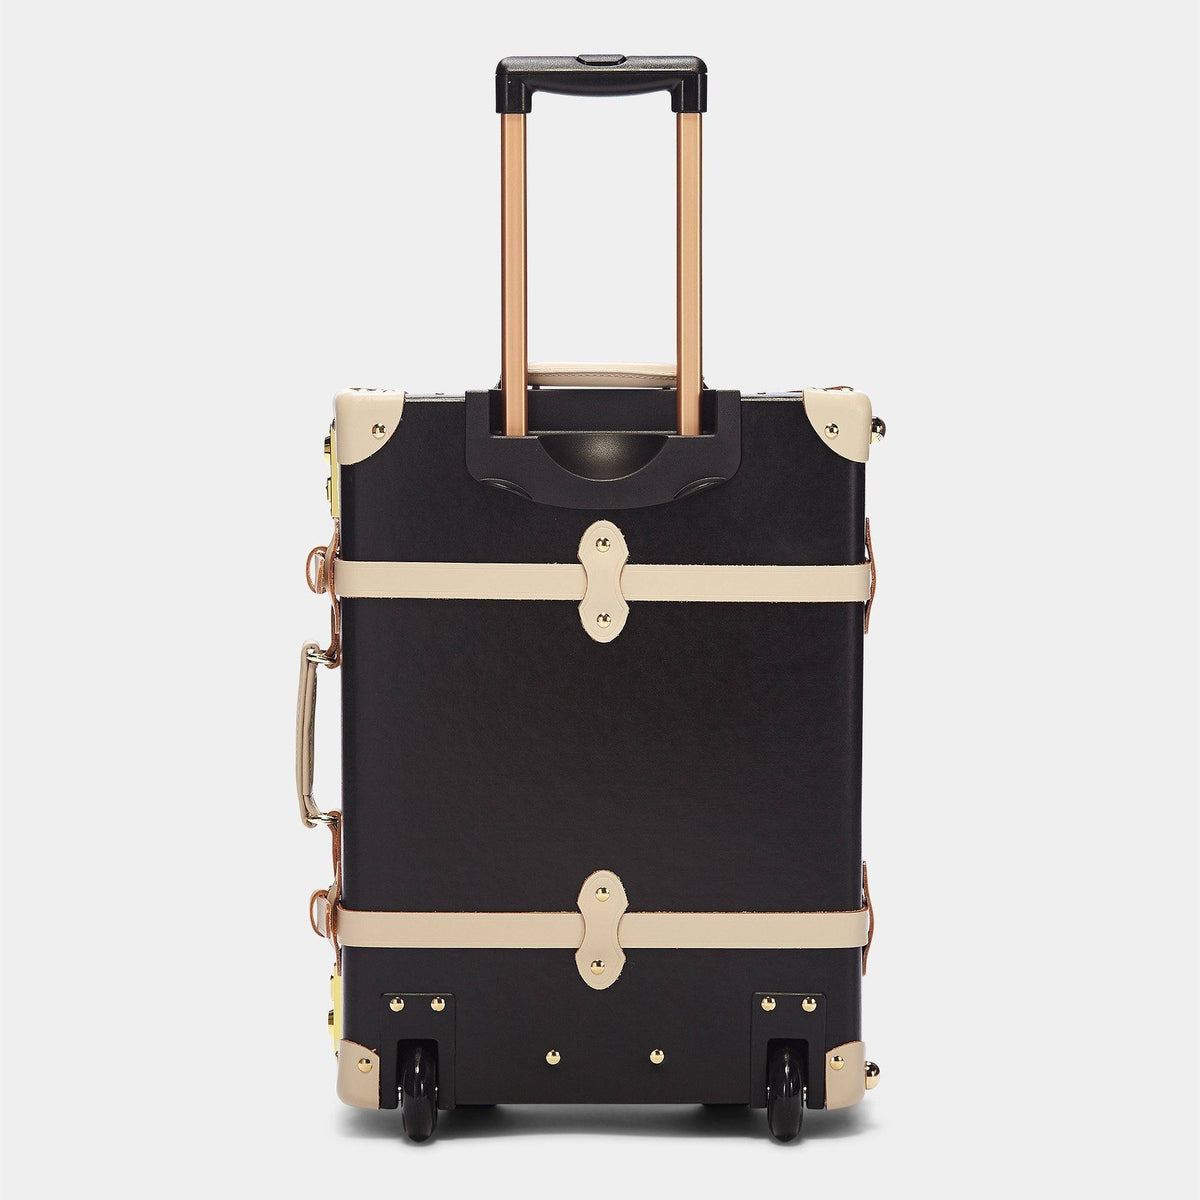 The Starlet Carryon in Black -Vintage Style Leather Case - Exterior Back With Extended Handle